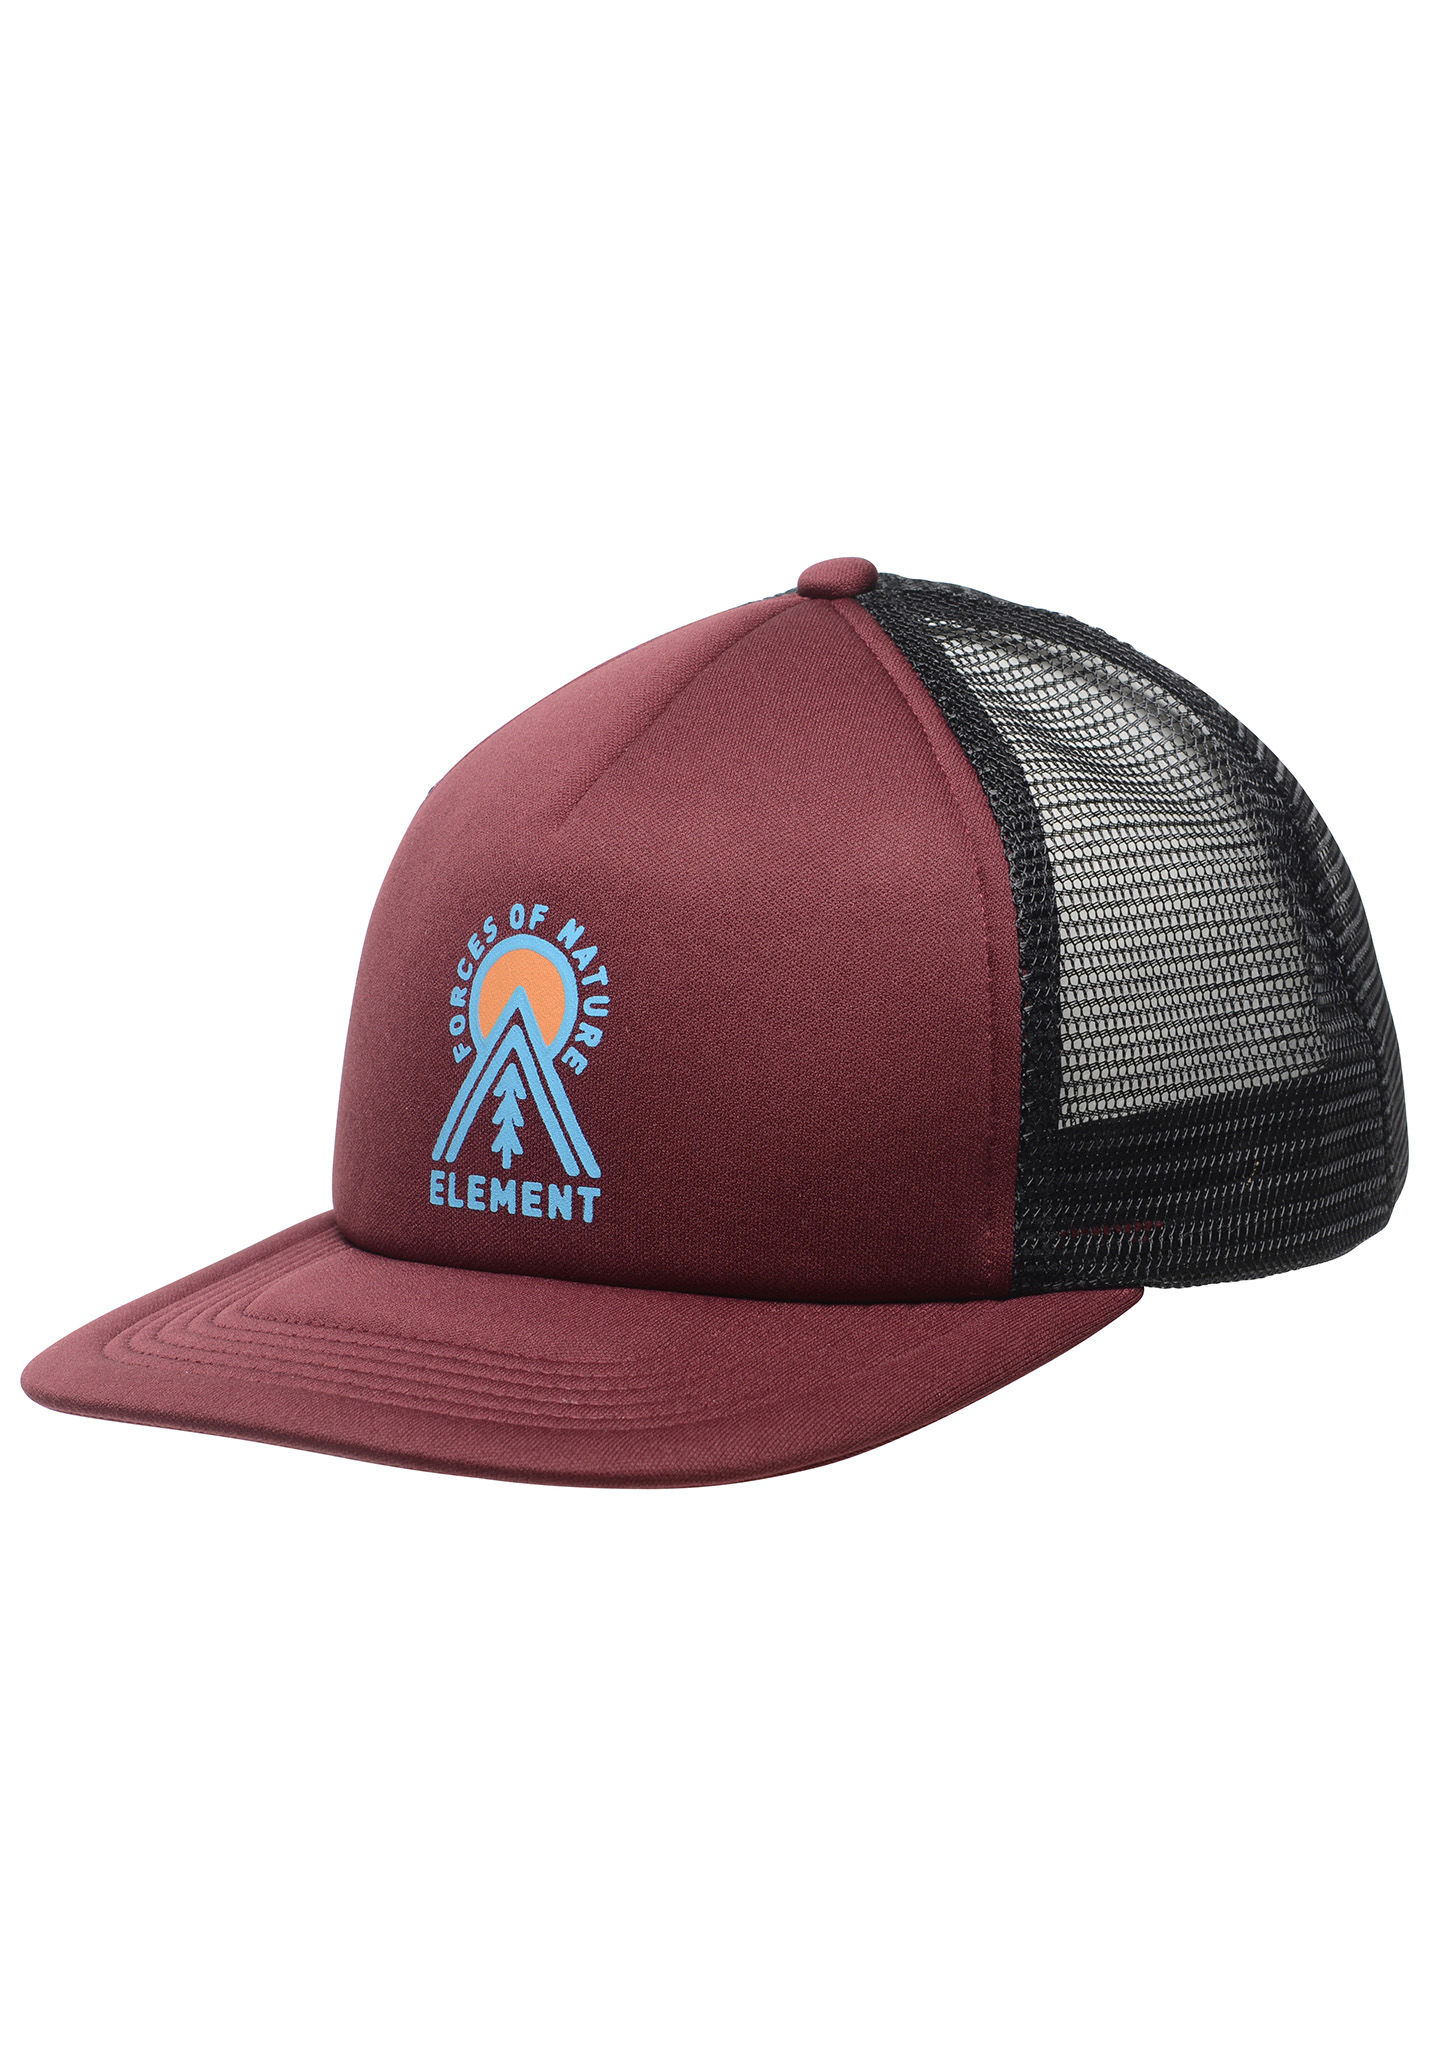 Element Rift - Trucker Cap - Red - Planet Sports 2de704ea4d1f